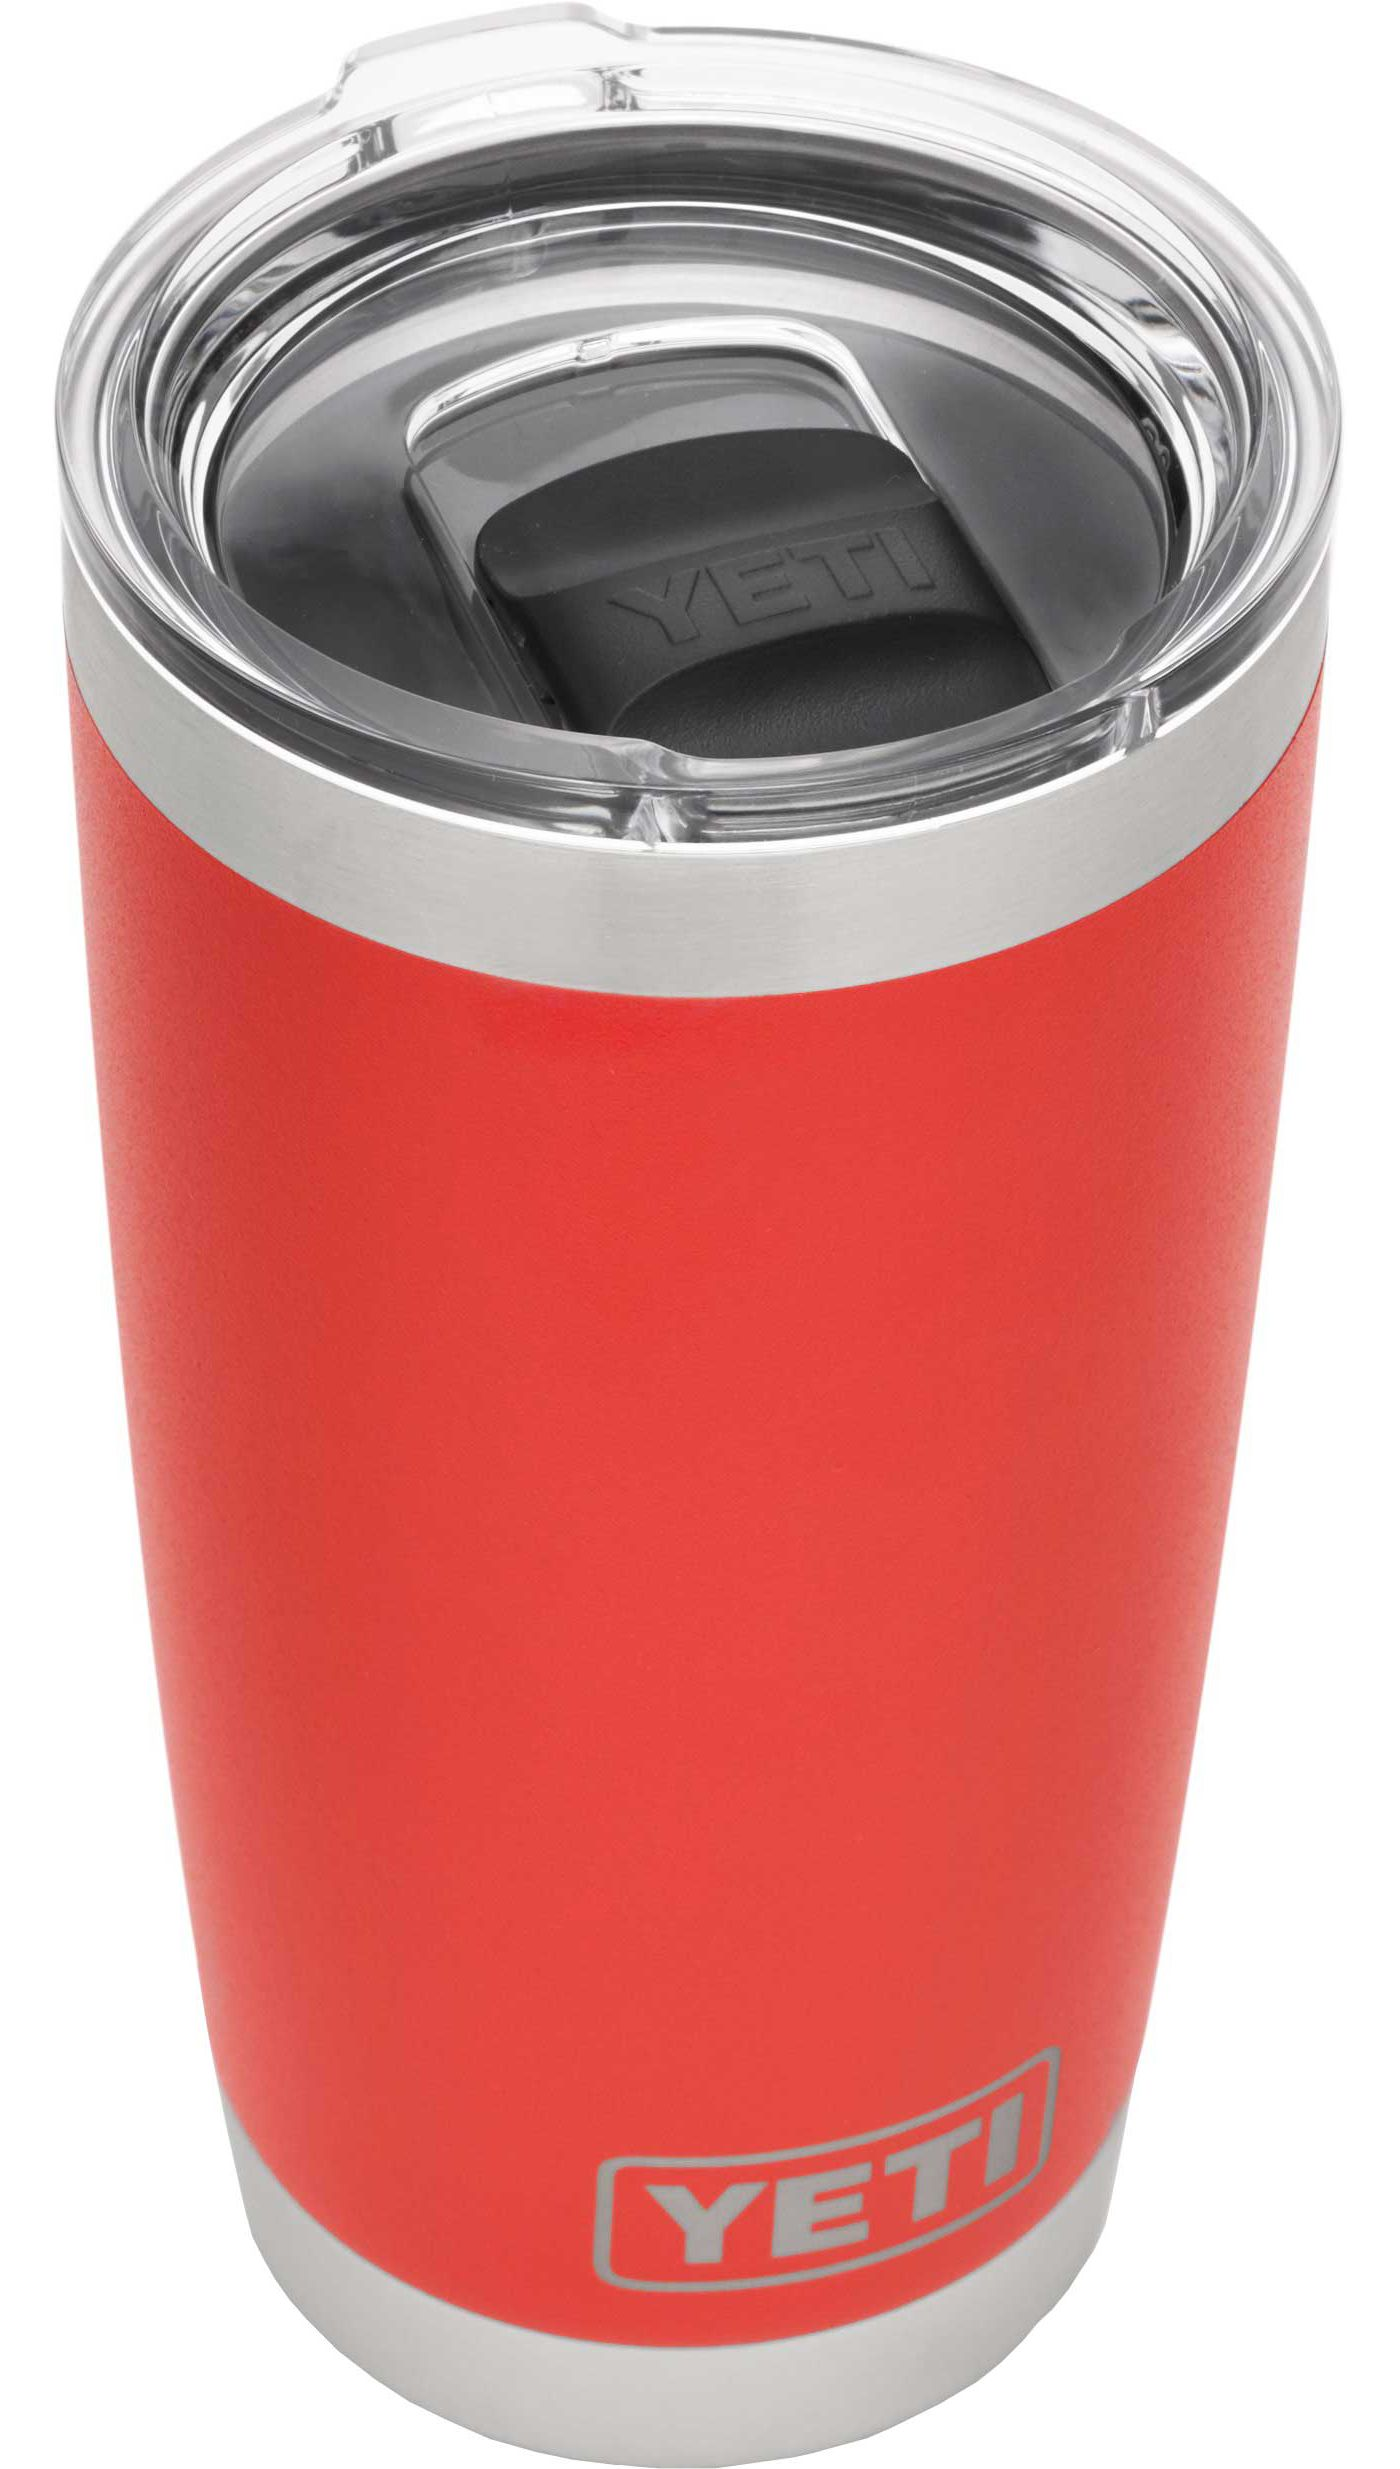 Yeti Cup Prices >> Yeti 20 Oz Rambler Tumbler With Magslider Lid